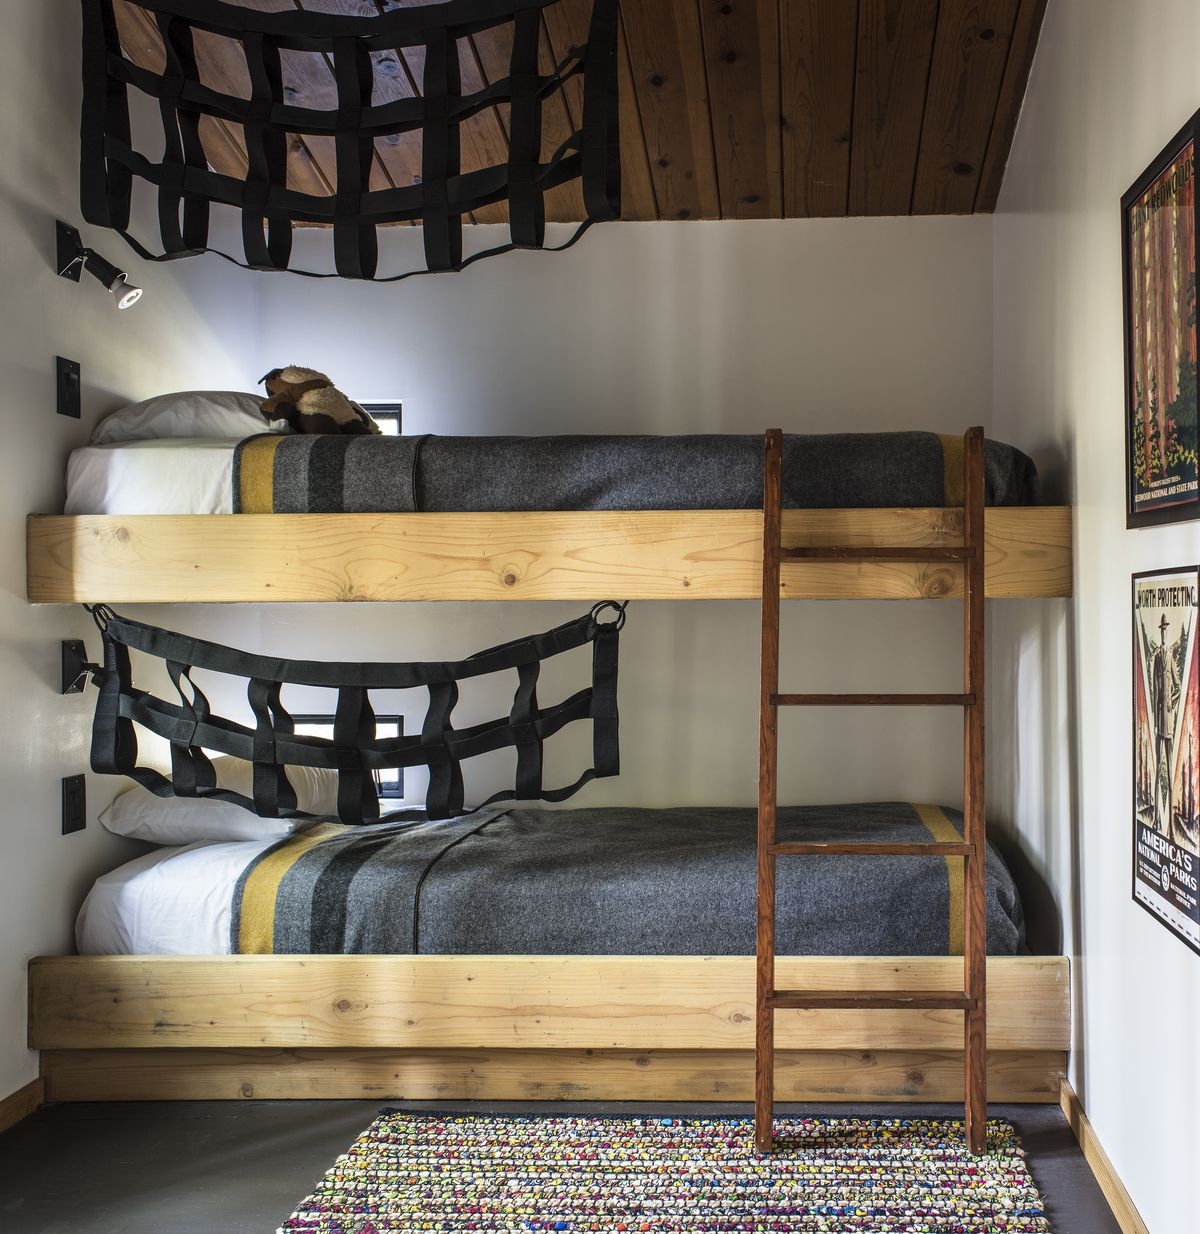 Bunk beds have cargo nets hanging to the side. They are dressed with army-style blankets.